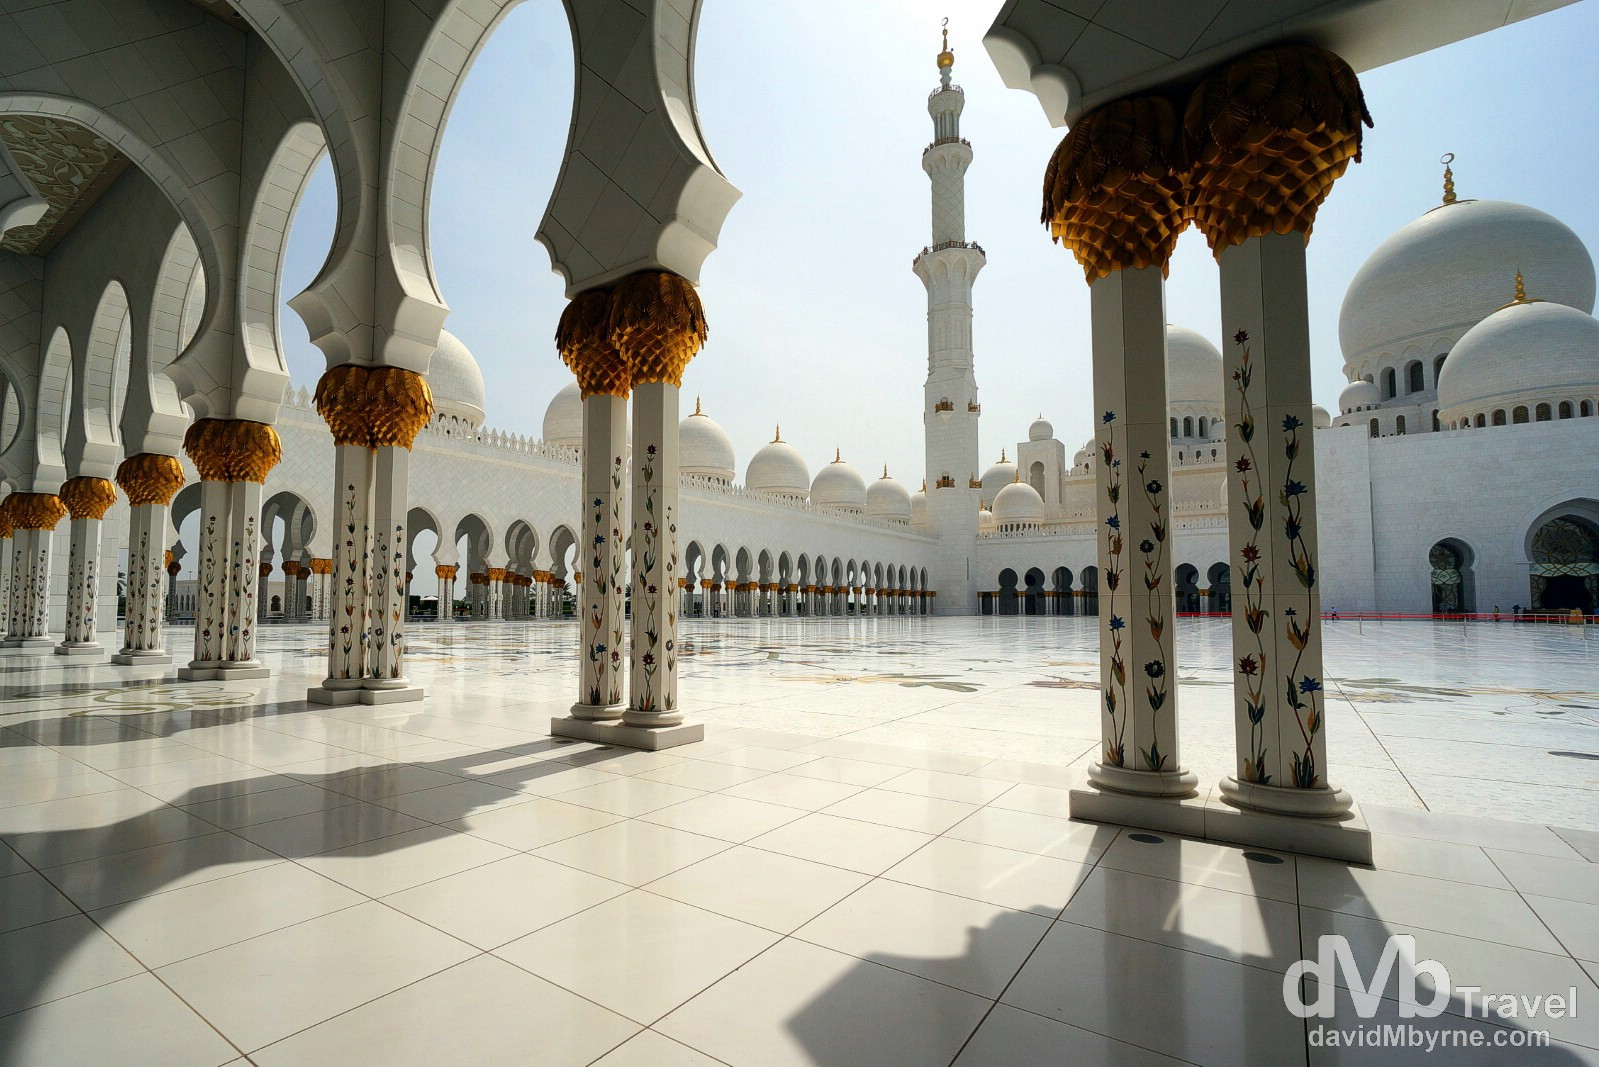 The Sheikh Zayed Grand Mosque in Abu Dhabi, UAE. April 23rd, 2014.